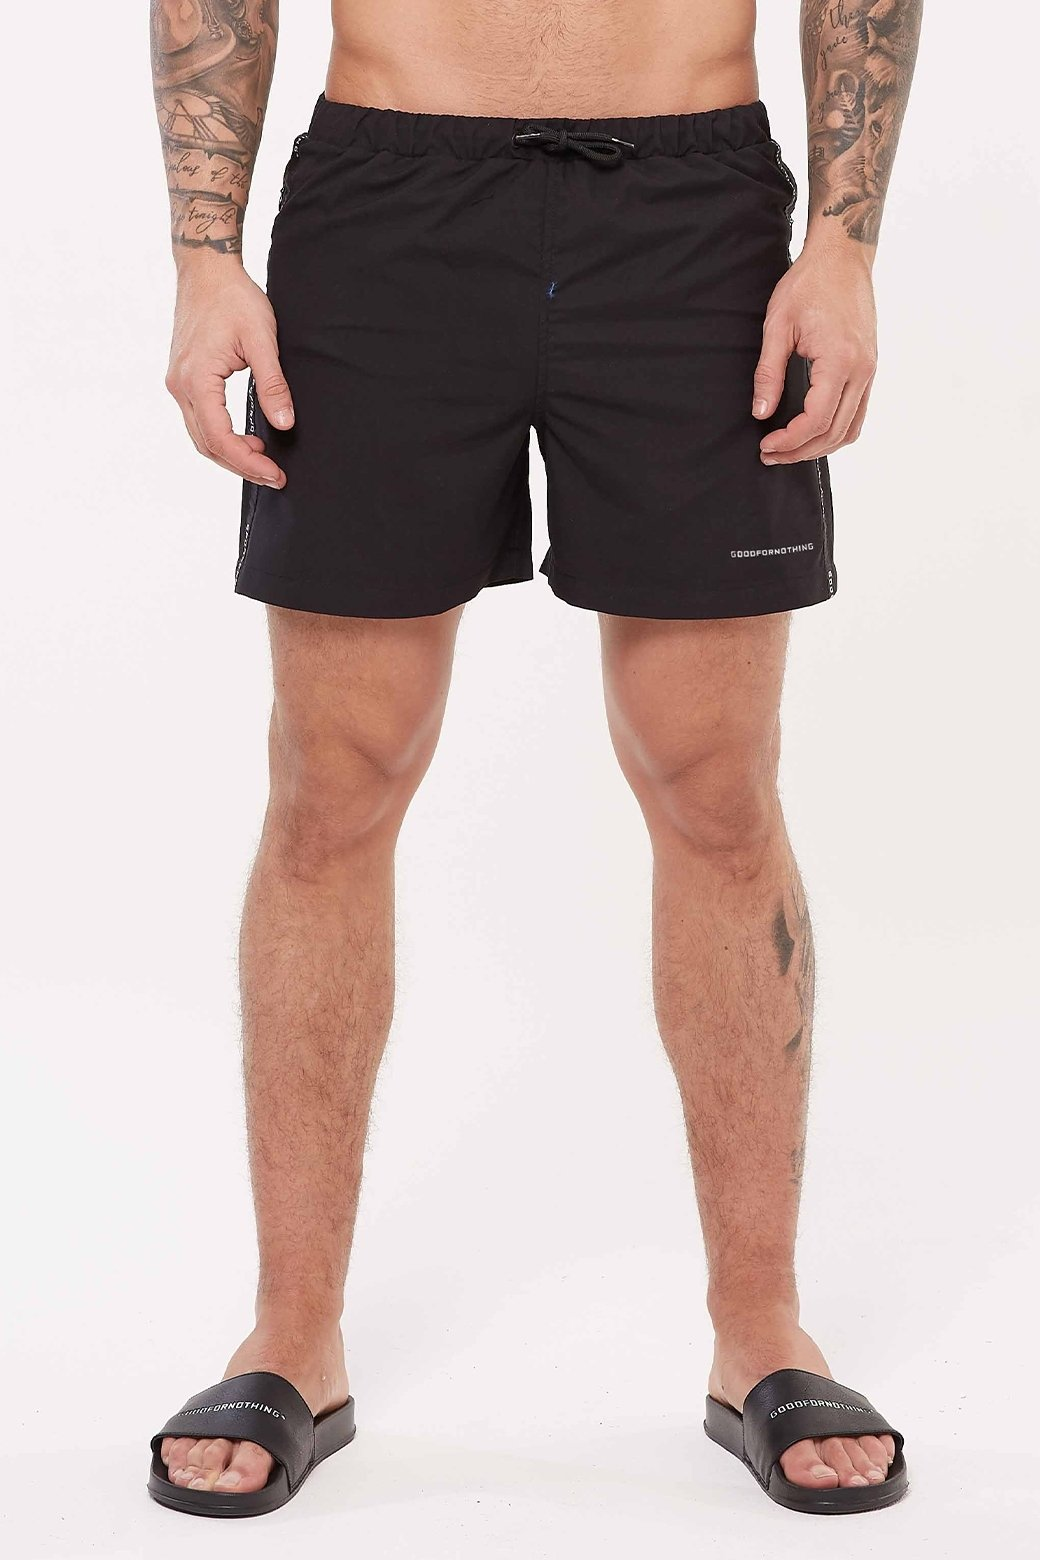 Future Black Swim Shorts - ZANMODA